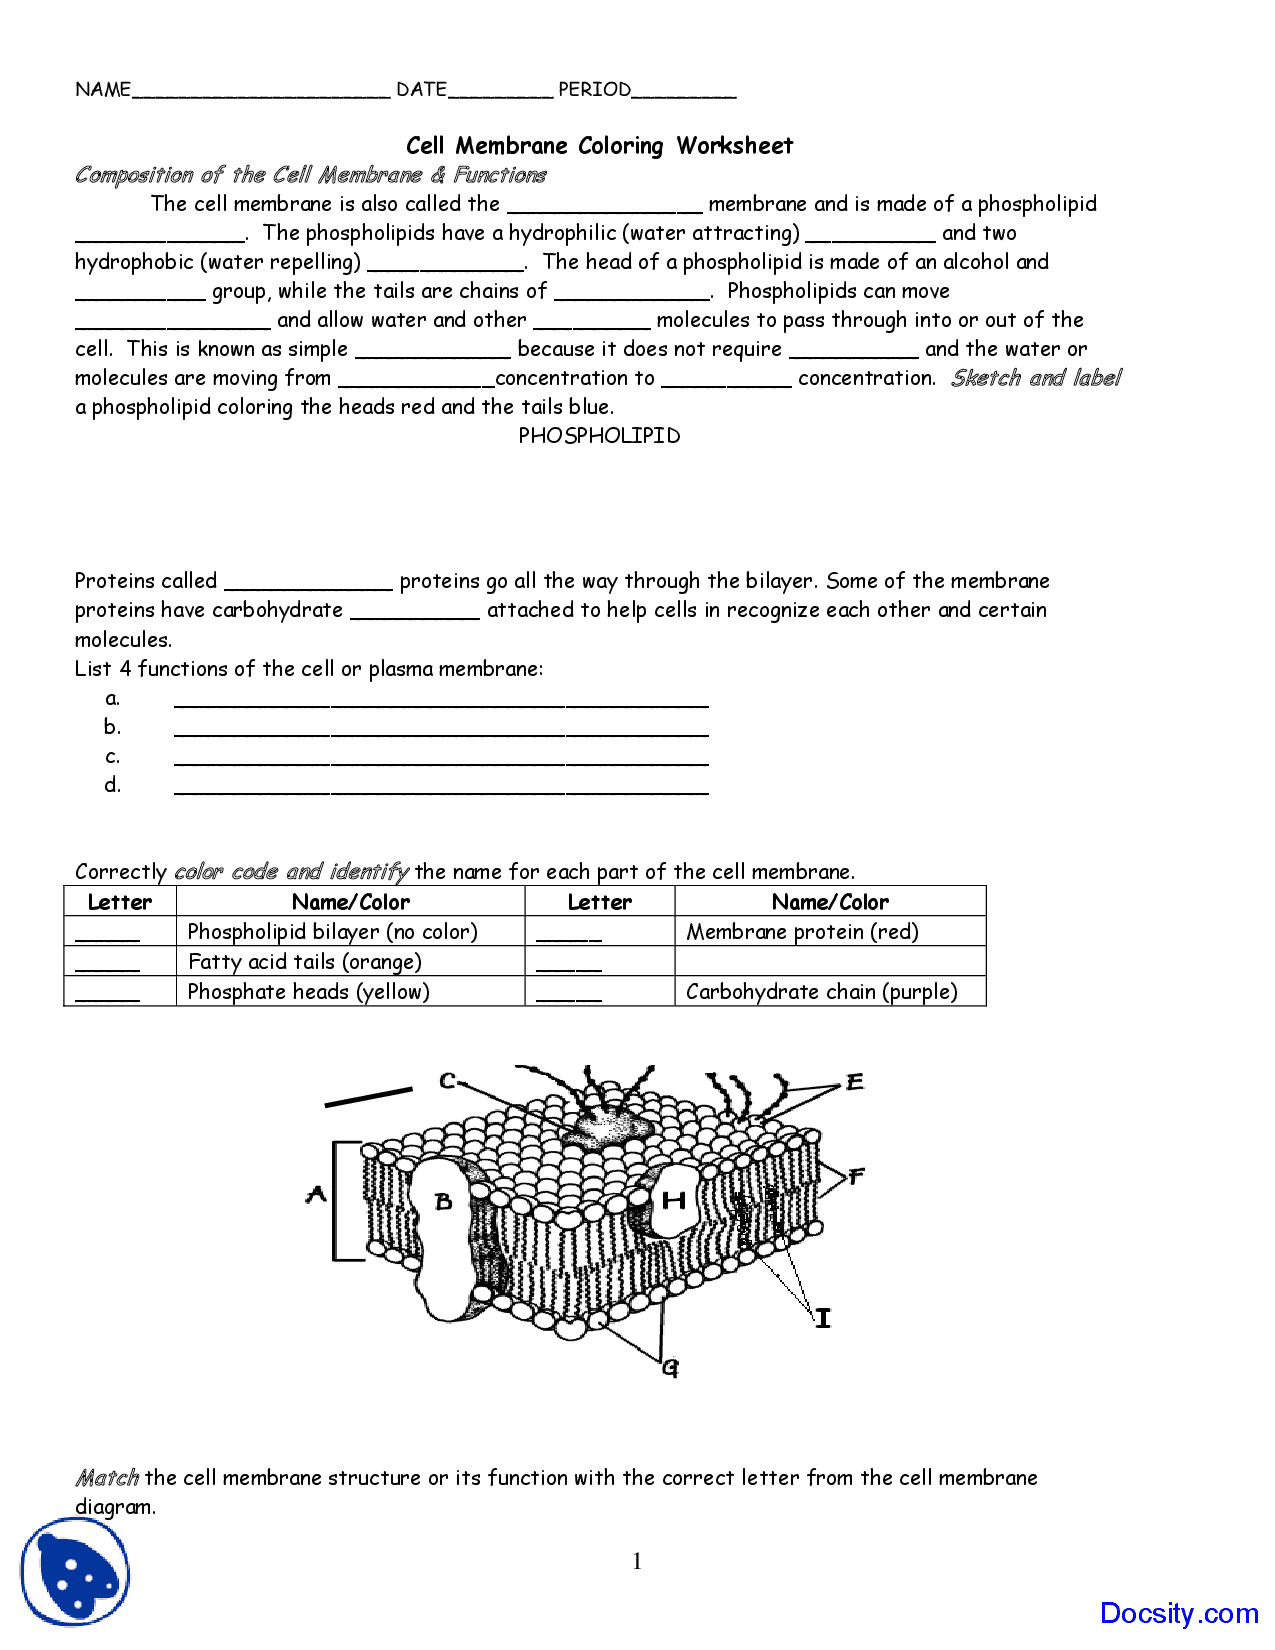 With Cell Membrane Coloring Worksheet